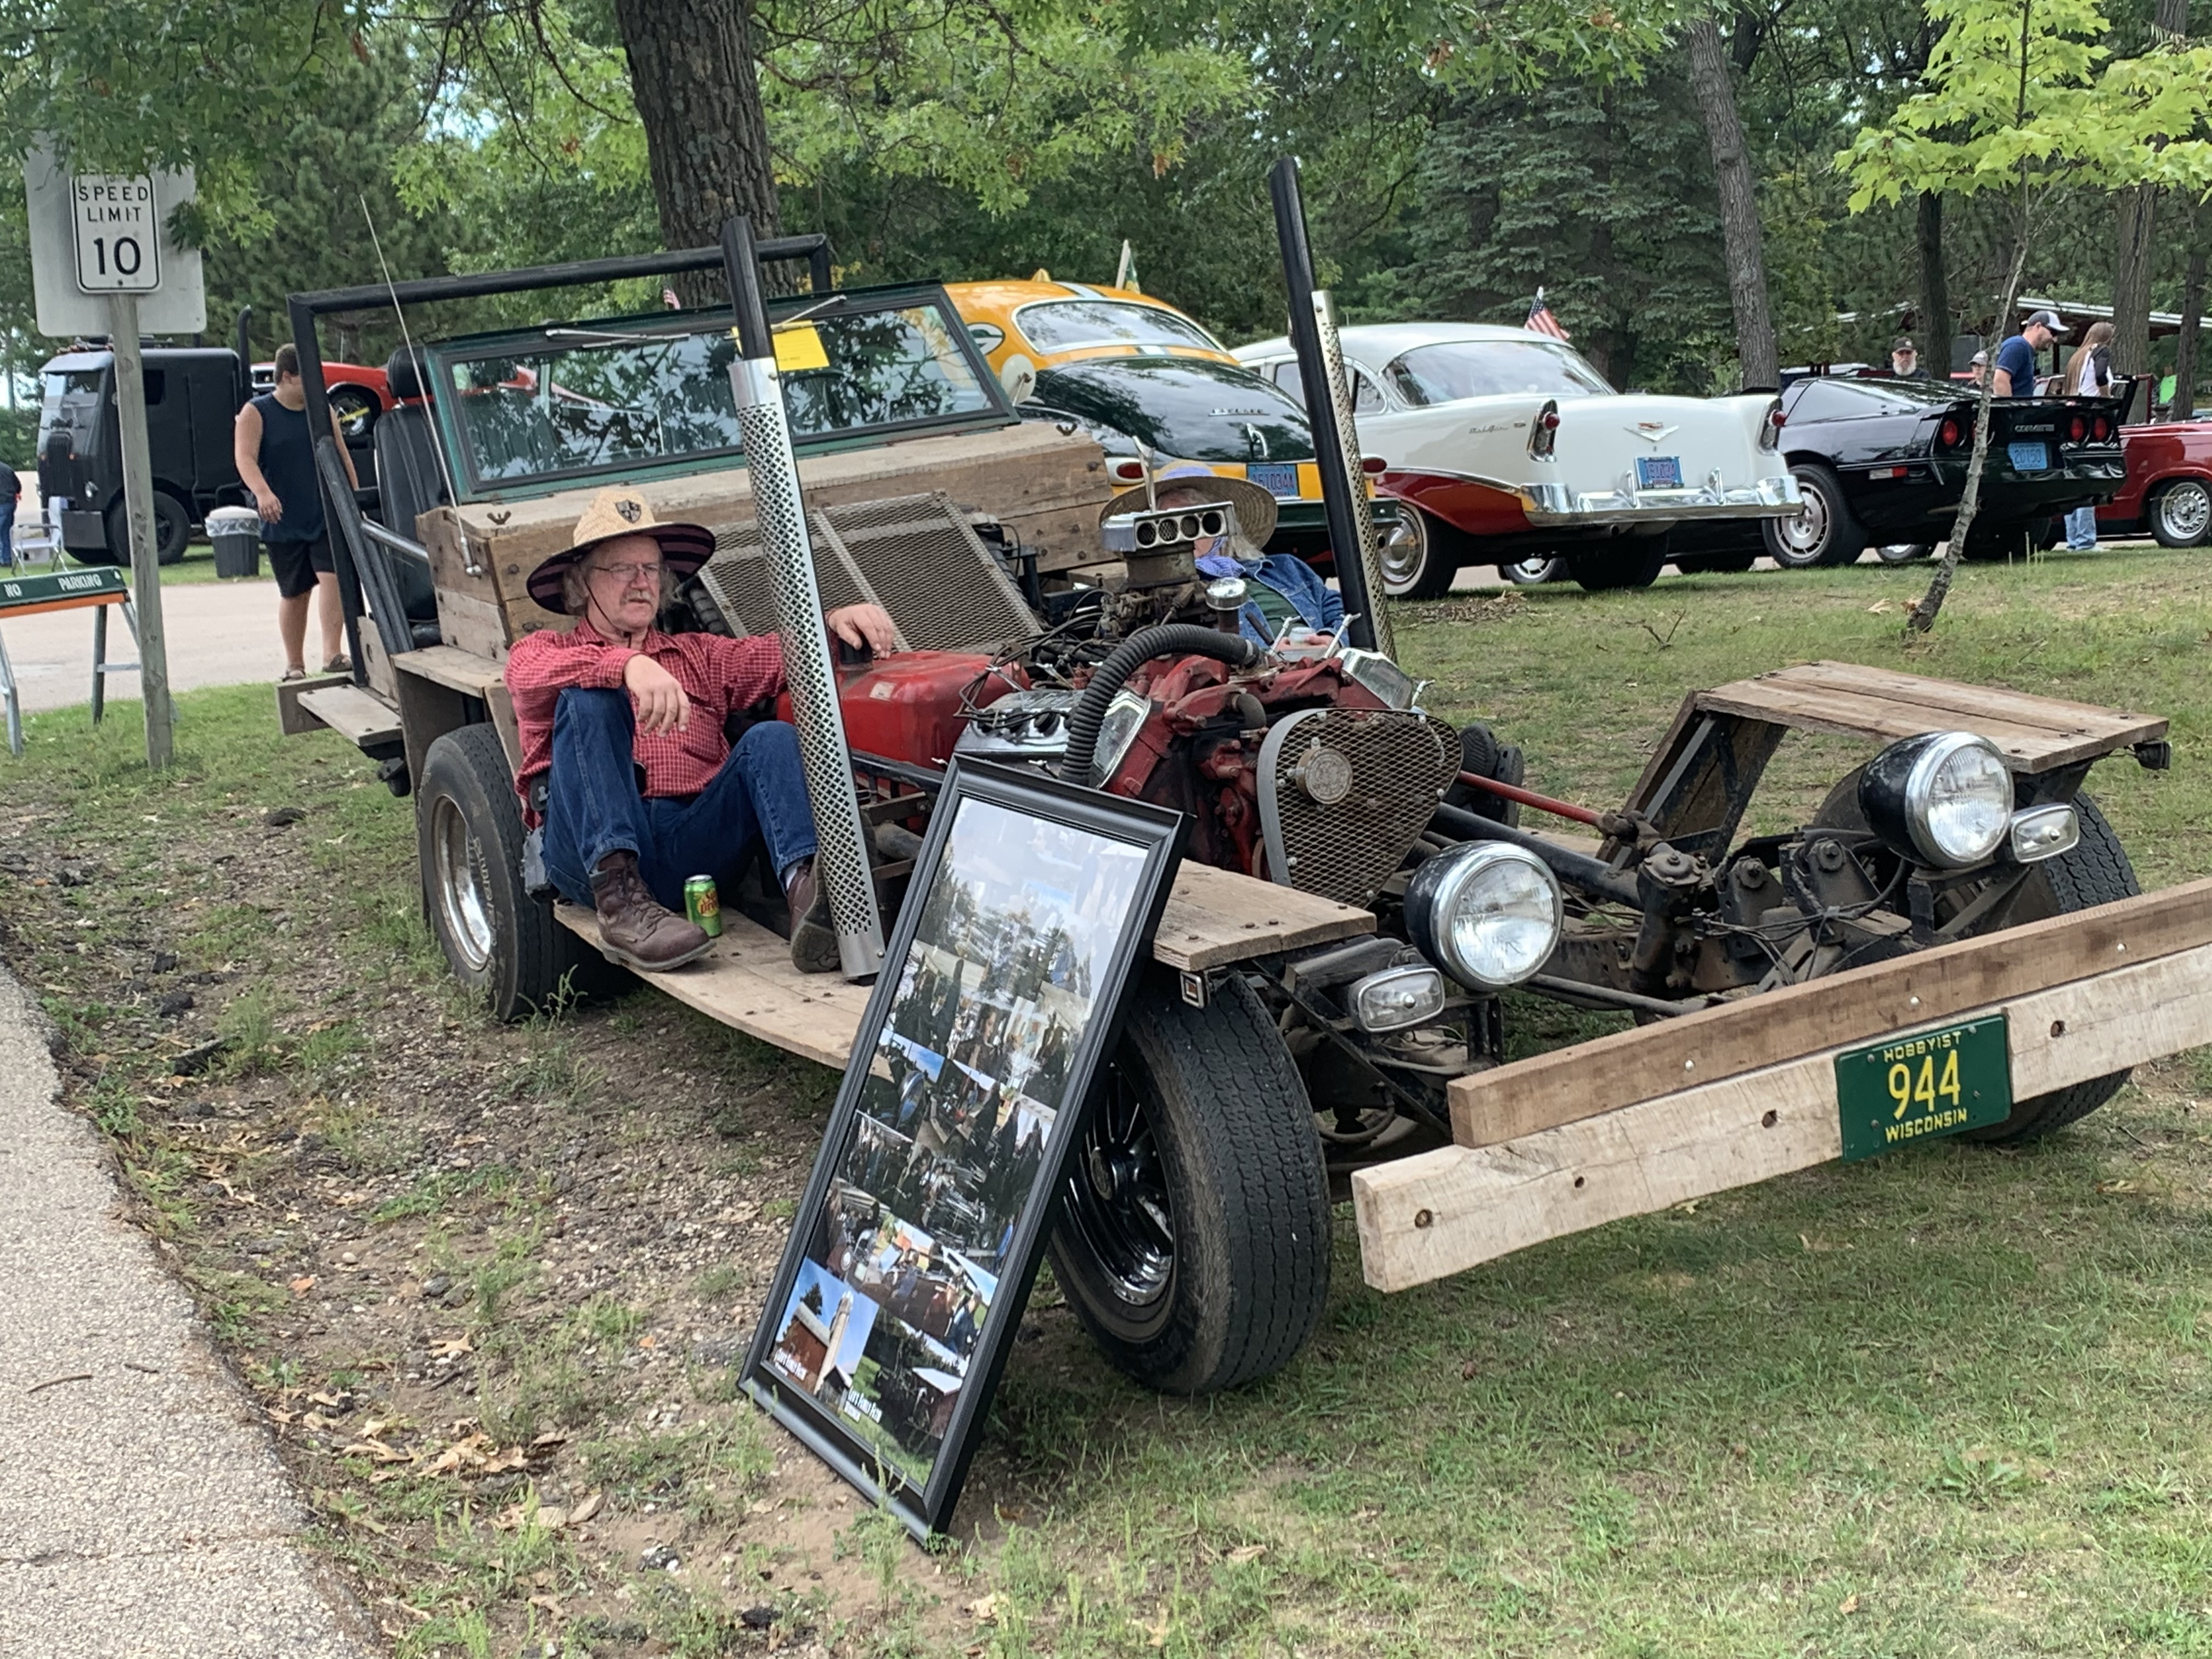 """Shawano residents Leo, left, and Deb Frank sit in their custom wooden car during the car show at Shawano Lake County Park on Sept. 12. The car was featured on an episode of """"American Pickers.""""Luke Reimer 